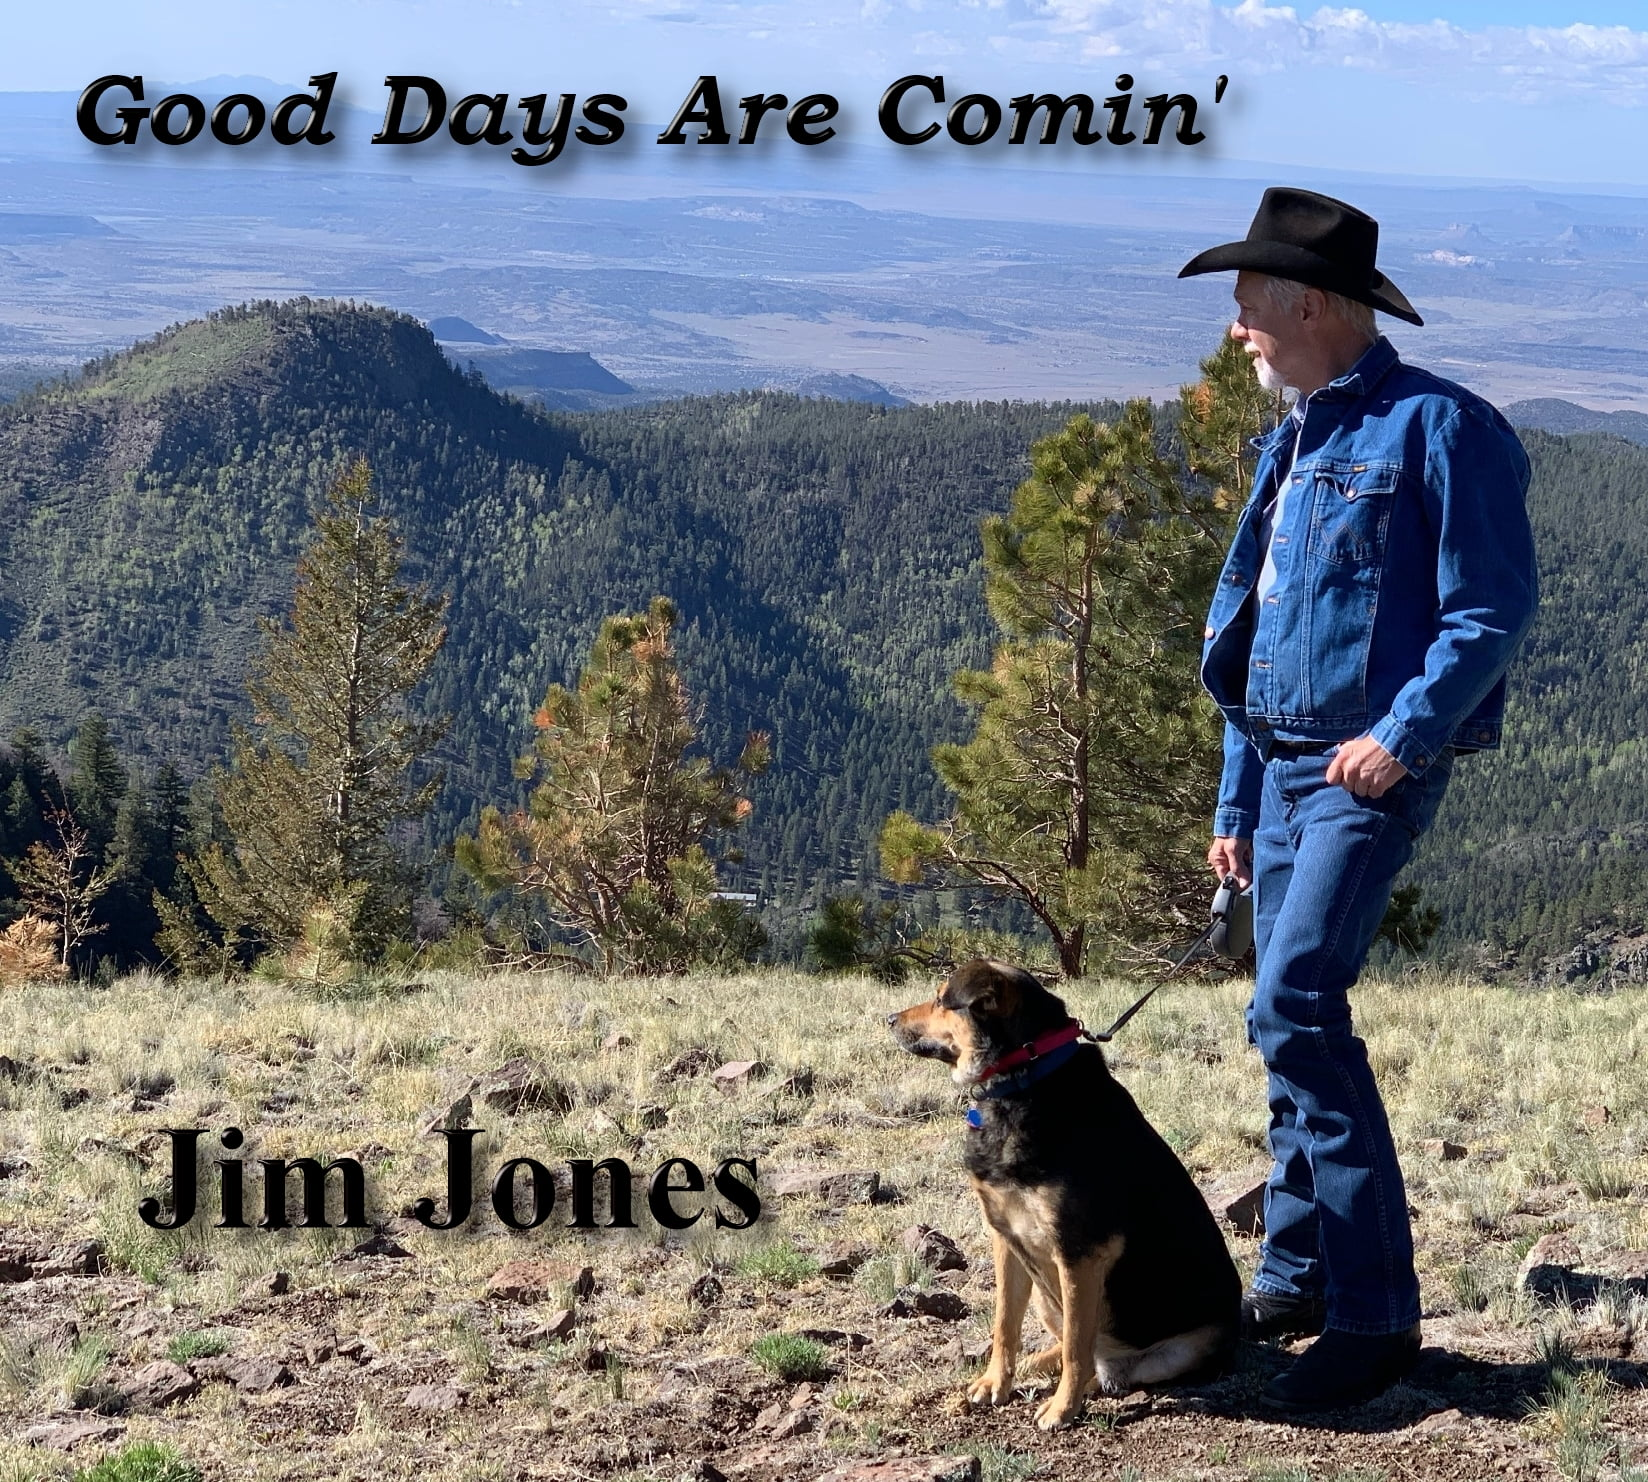 Good Days Are Comin' By Jim Jones